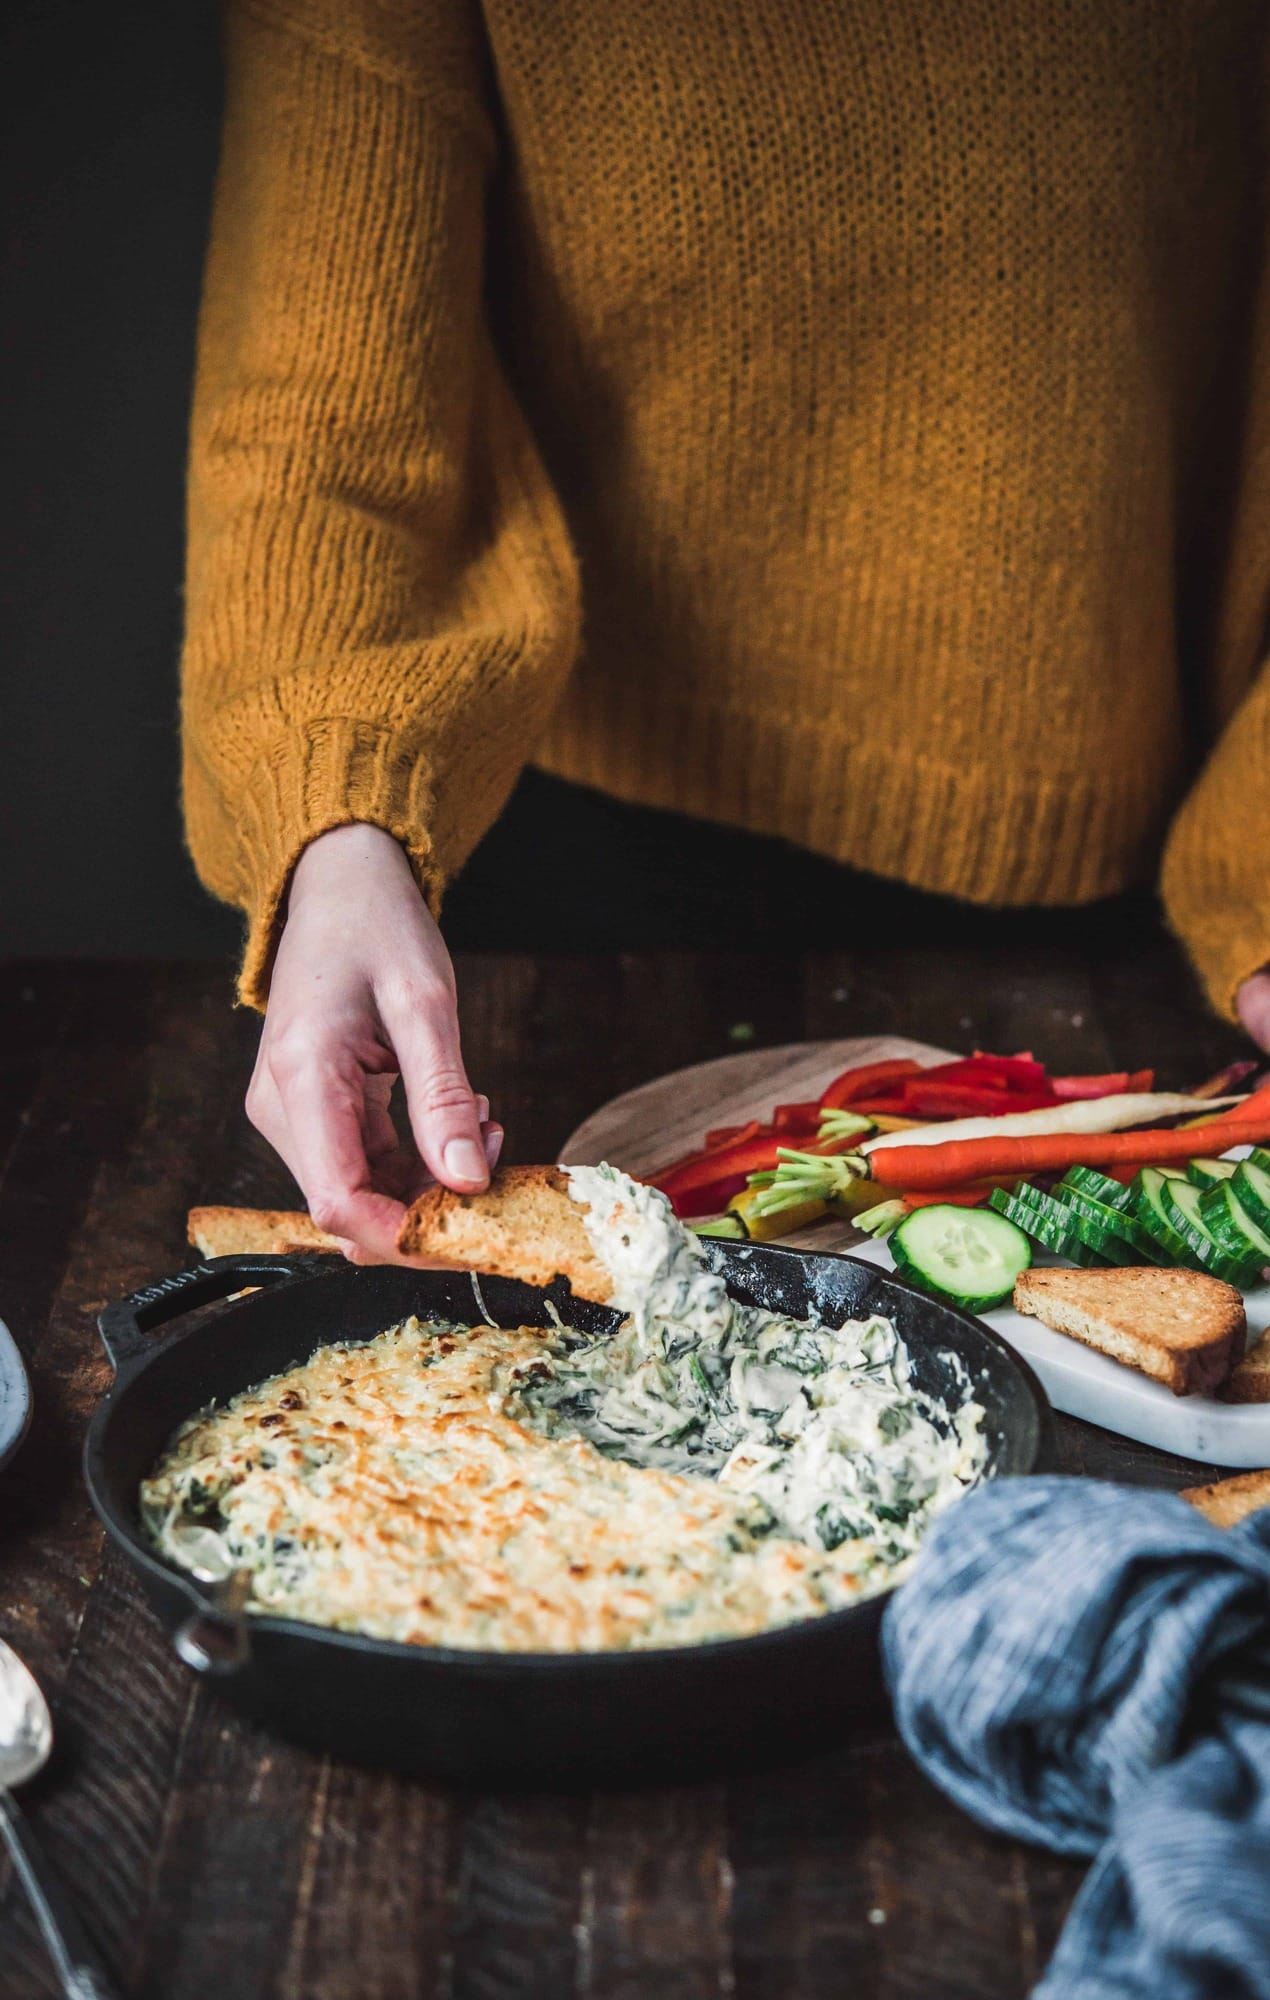 Side view of person in sweater dipping bread into vegan spinach artichoke dip in cast iron skillet